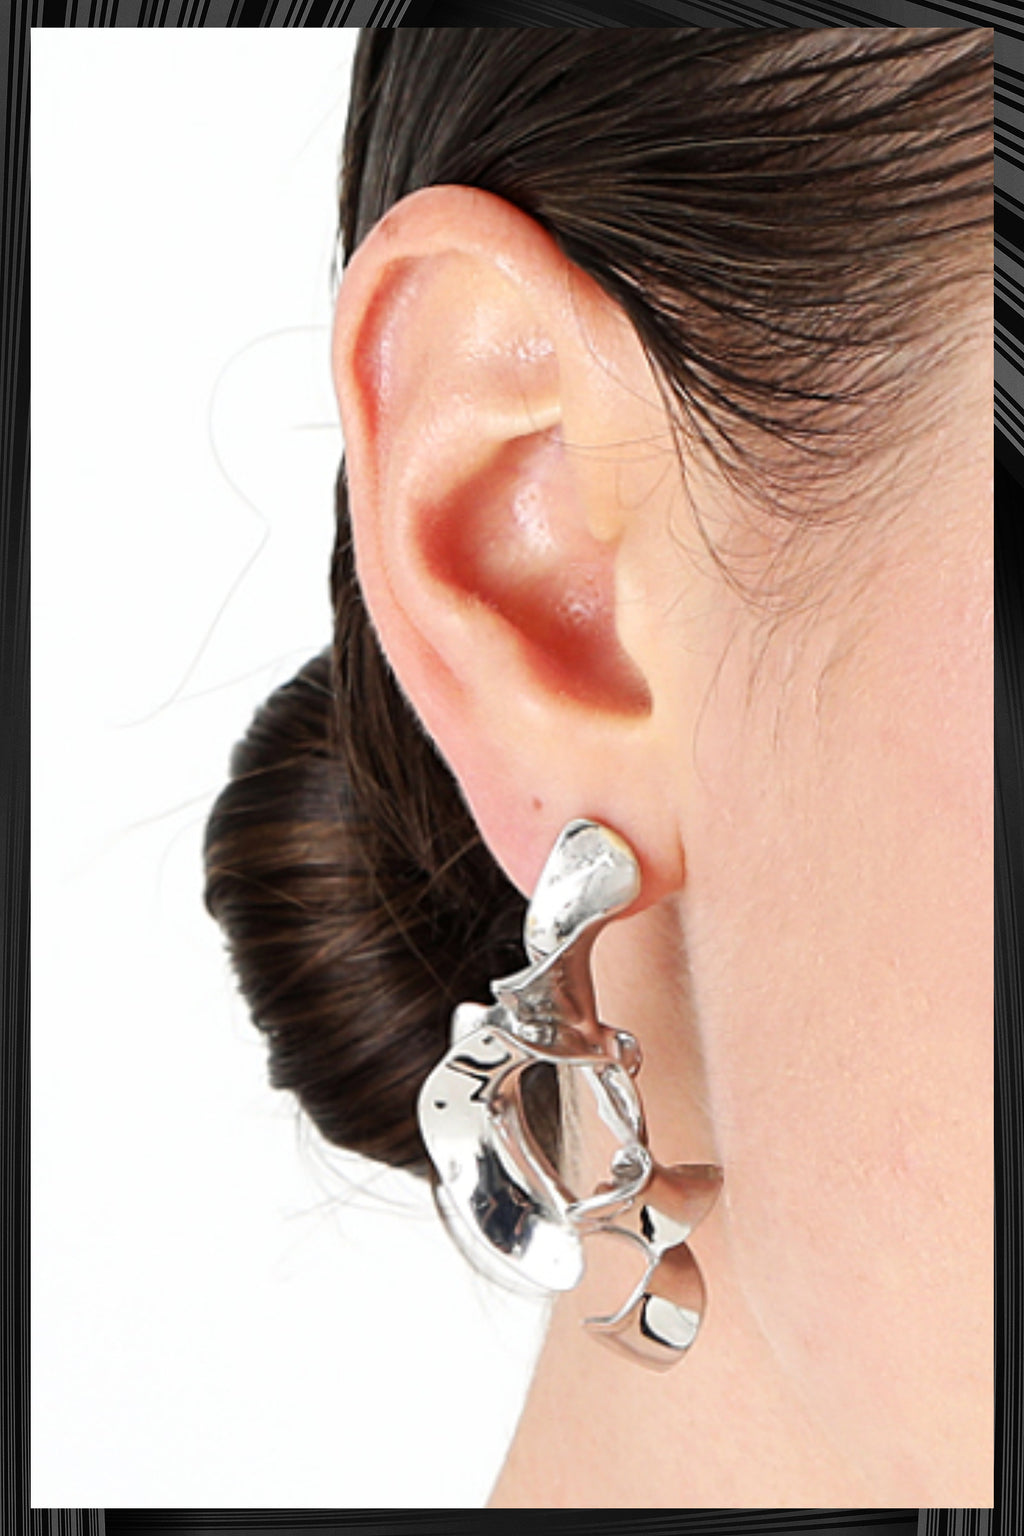 Flamenco Fire Earrings | Free Delivery - 2-3 Weeks Shipping